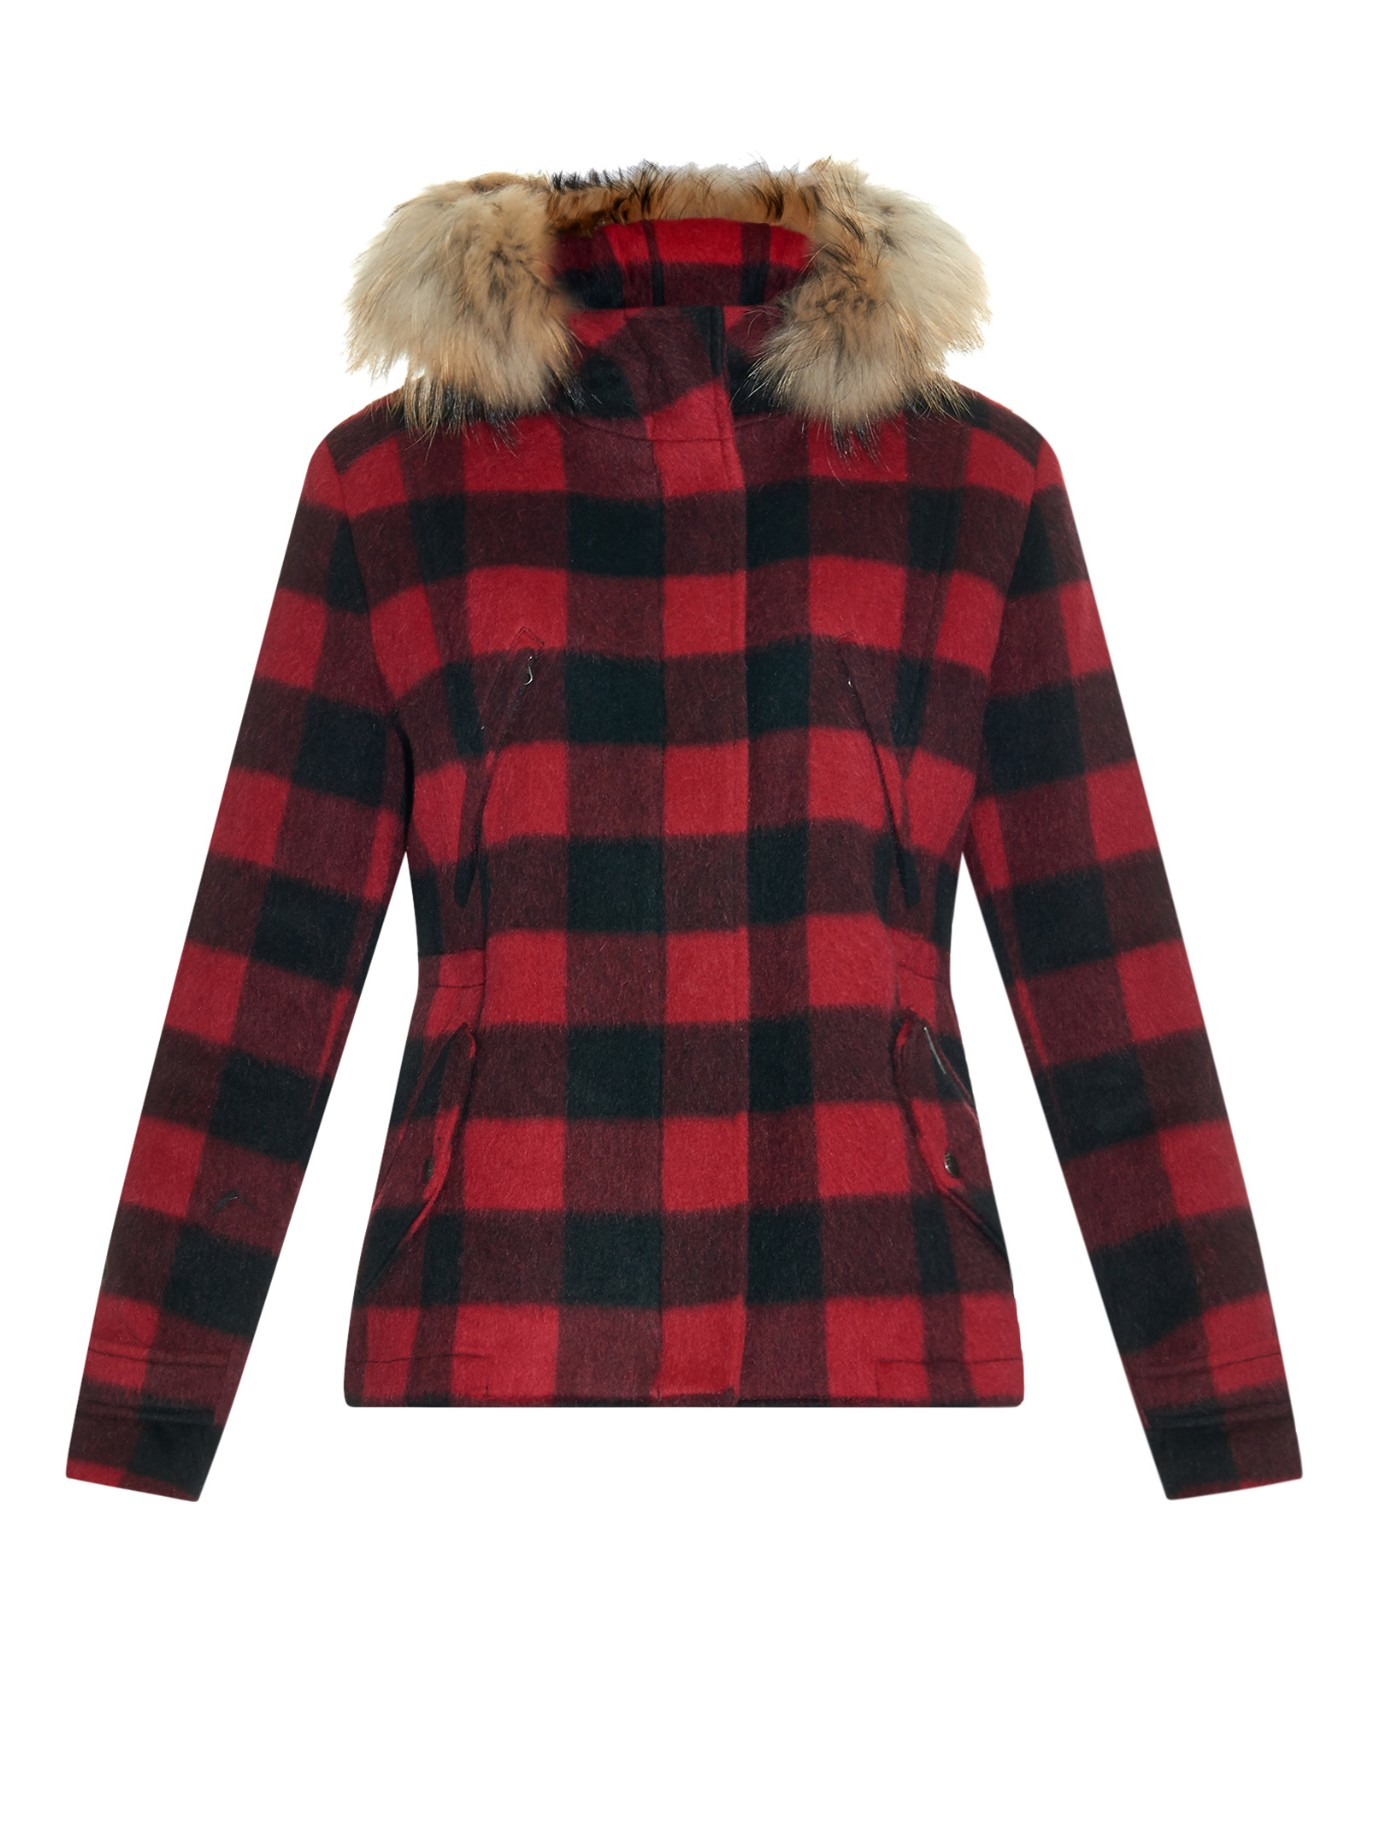 Lyst Woolrich Plaid Lumberjack Wool Jacket In Red